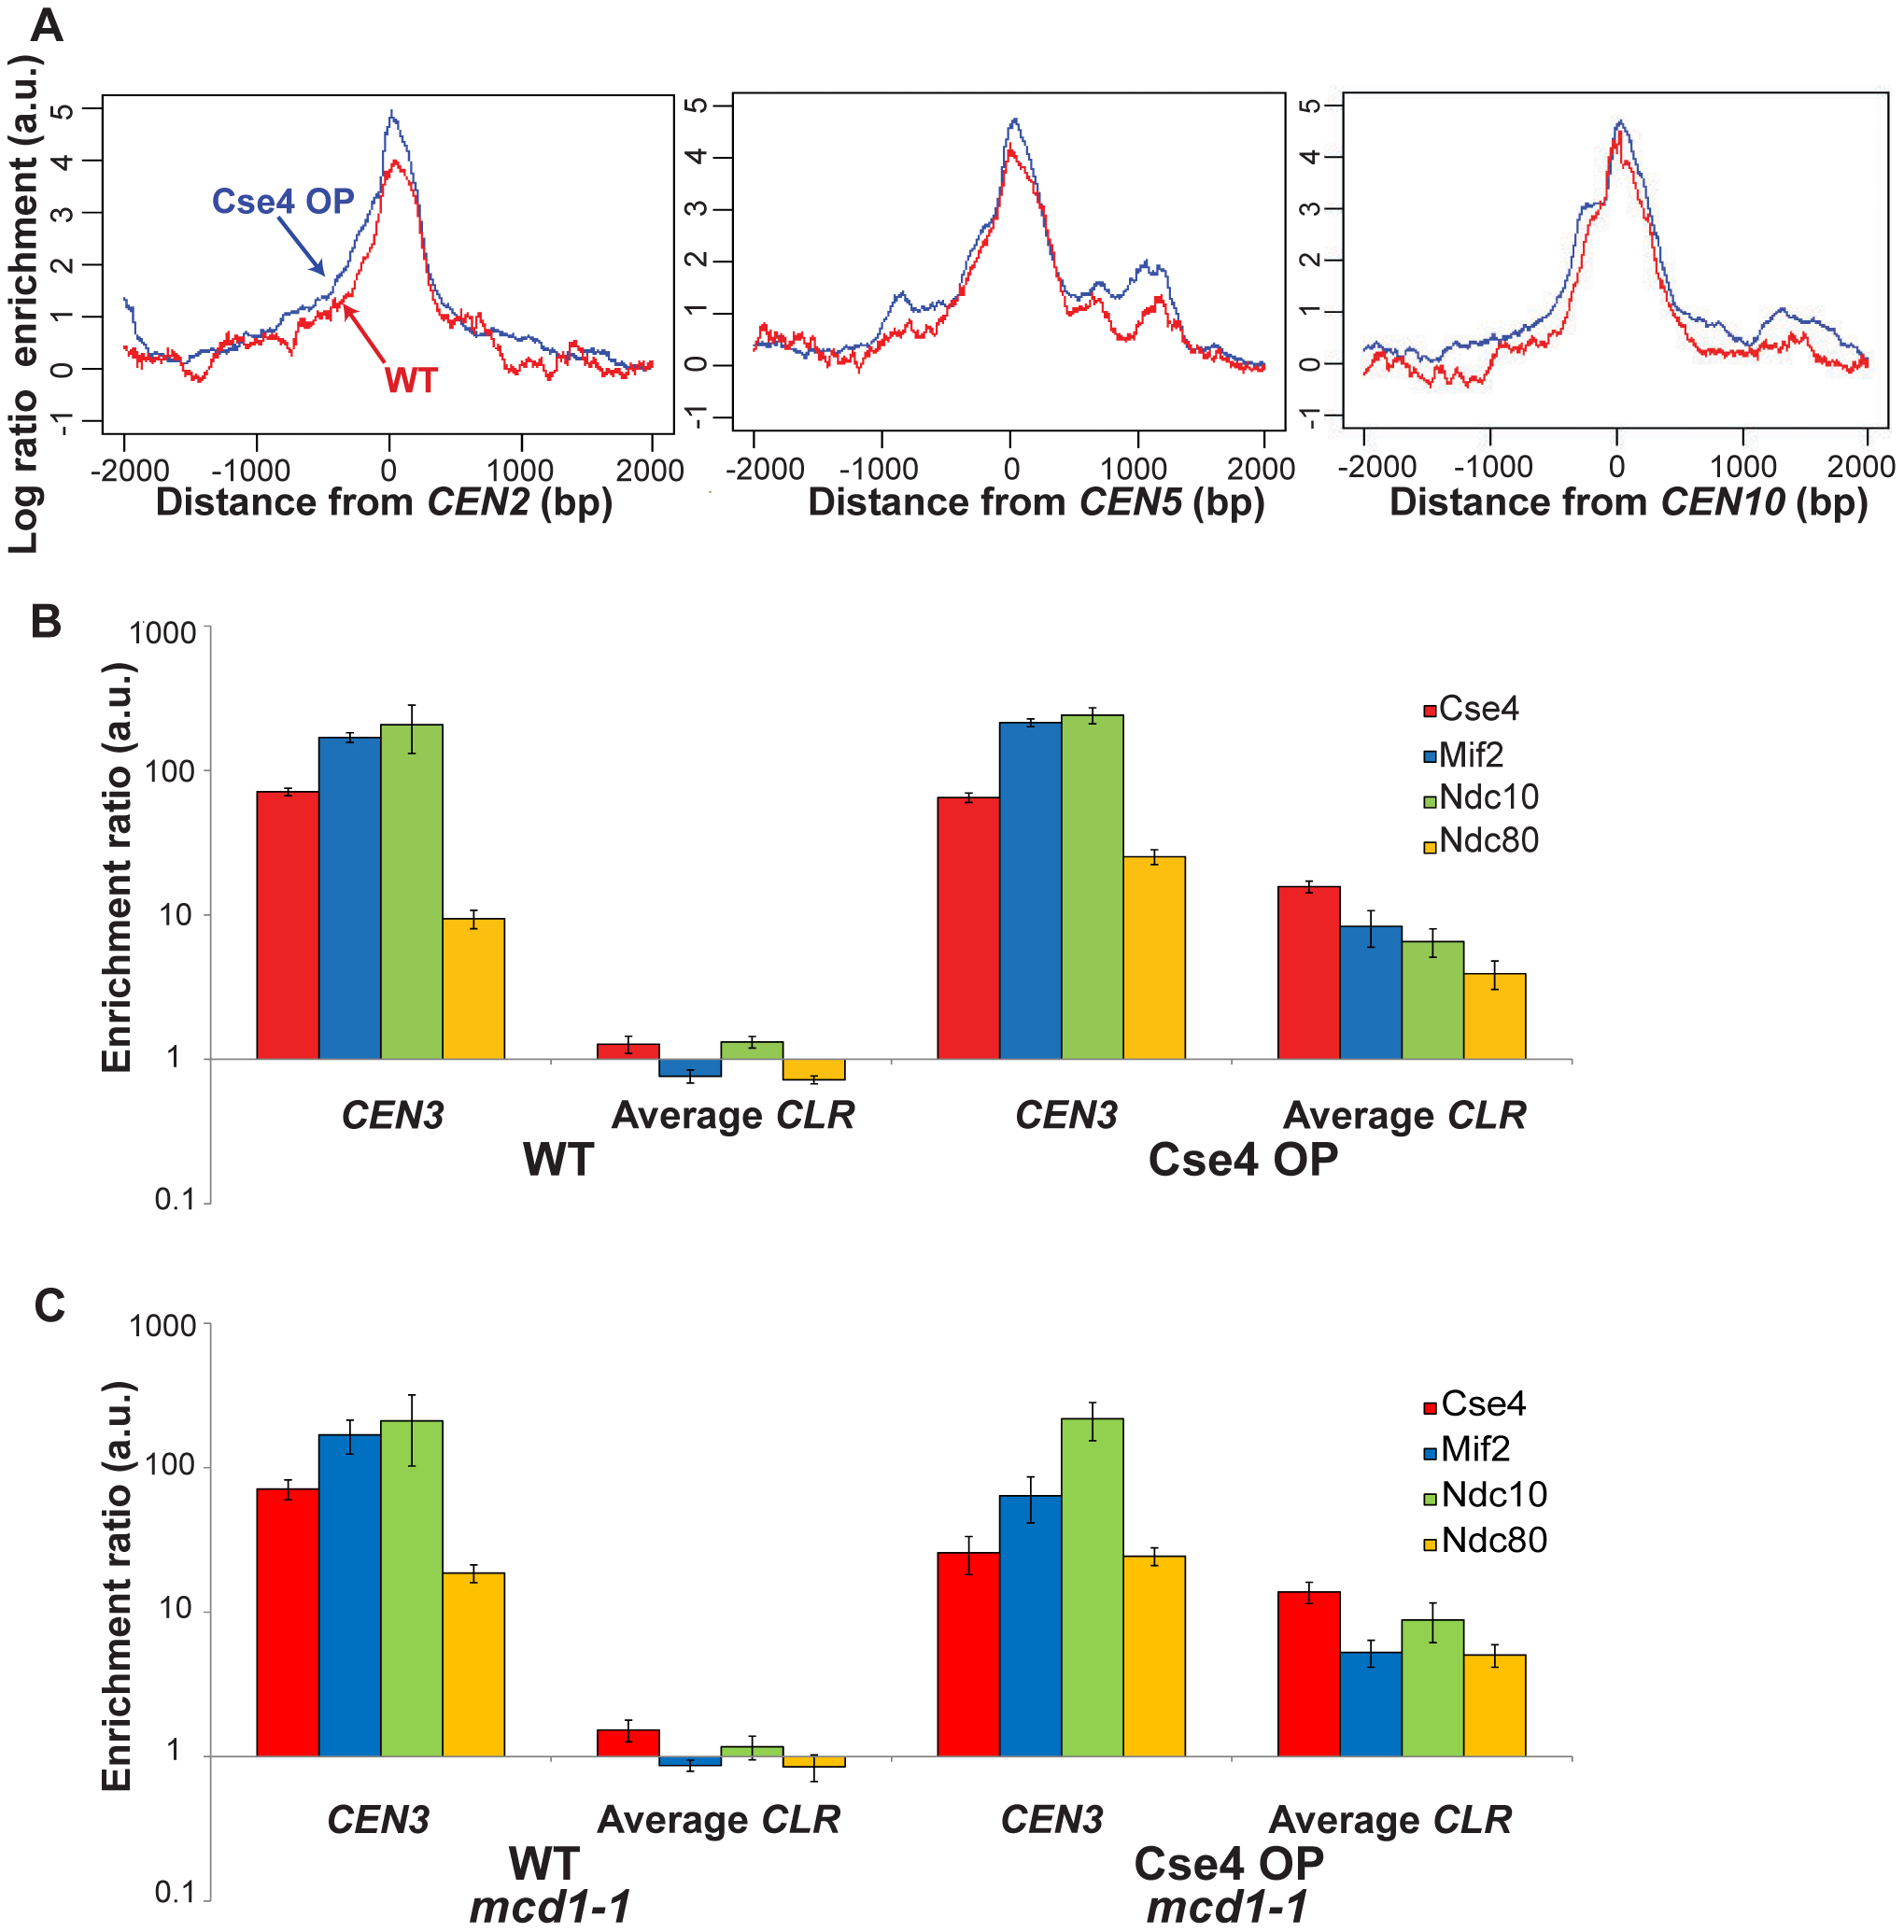 Quantitation of protein binding in Cse4 OP strains.